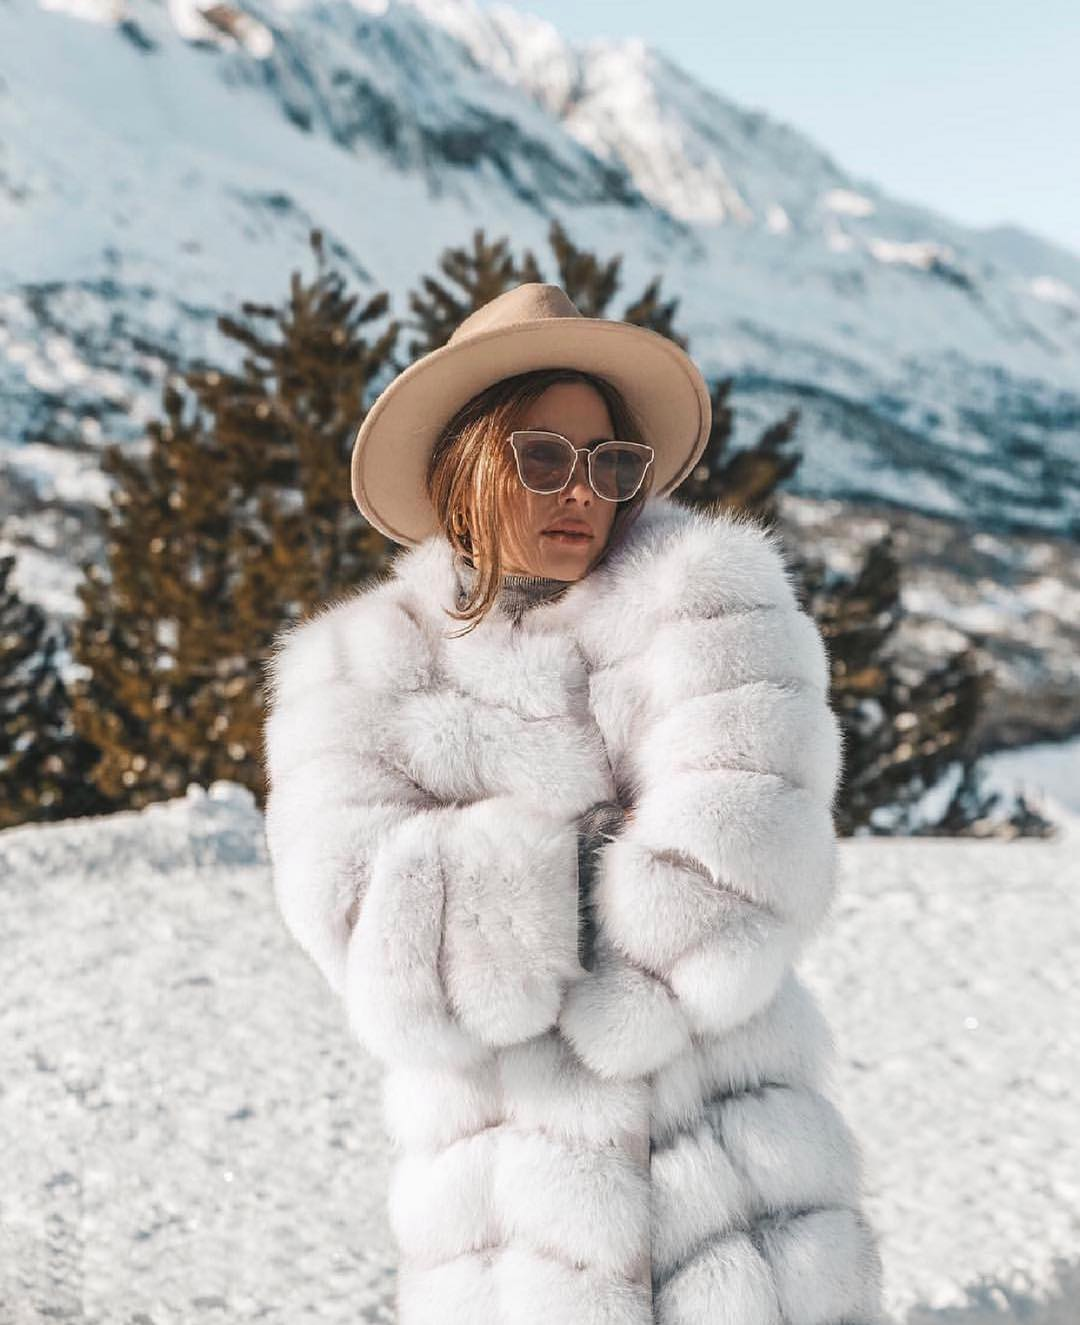 White Fur Coat With Oversized Cat-Eye Sunglasses And Cream Fedora Hat 2019